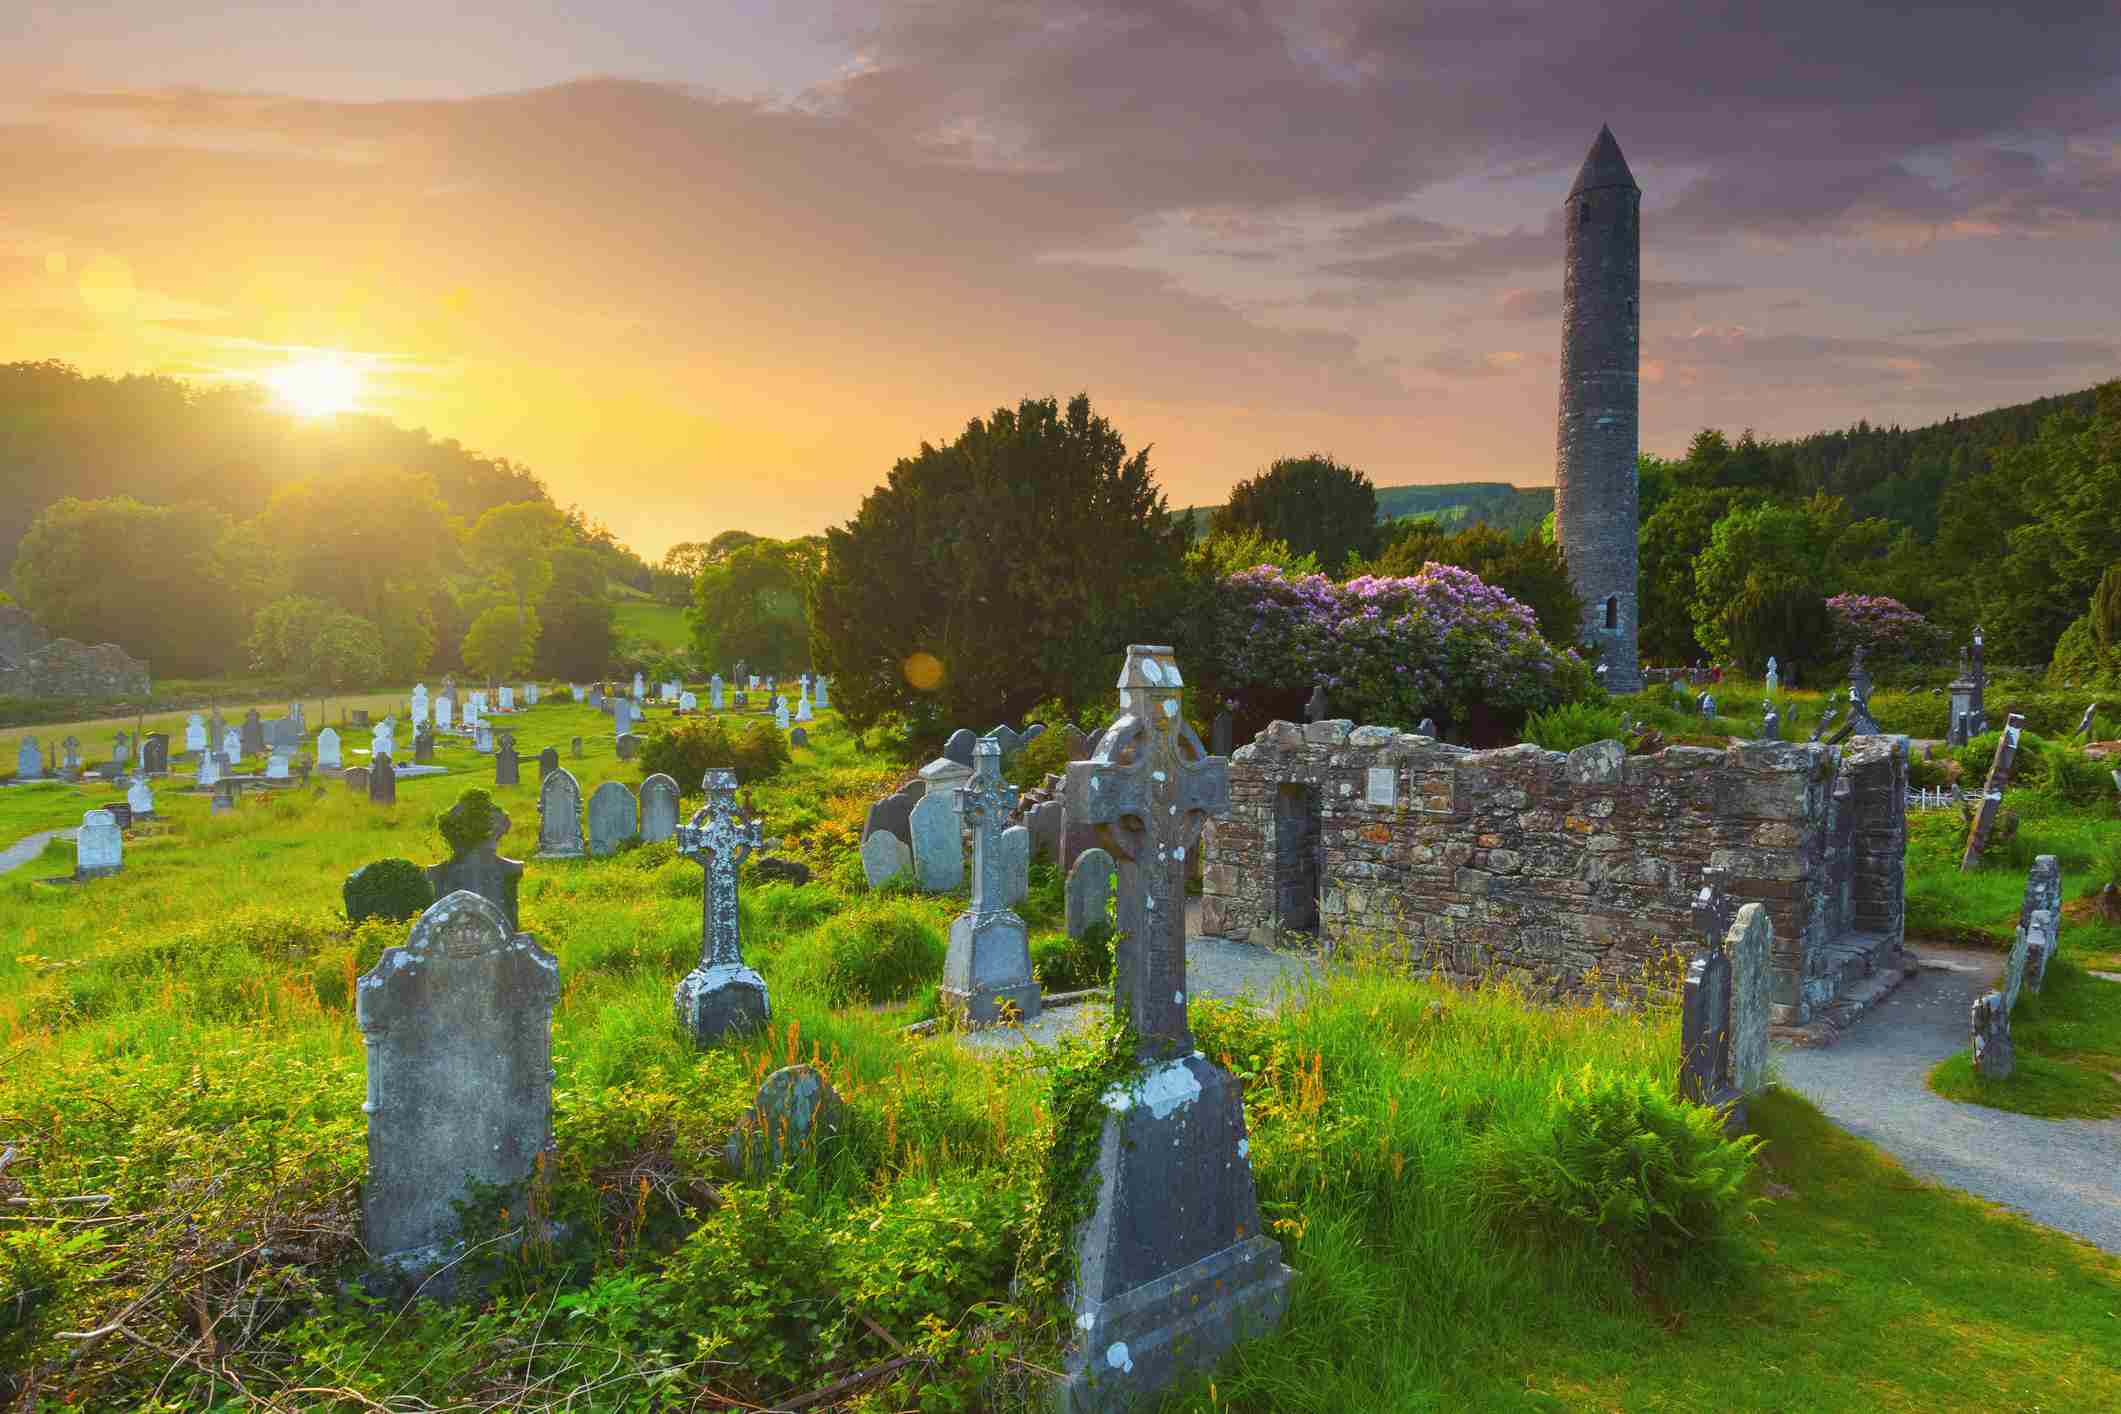 The round tower and the cemetery at the Glendalough monastic site